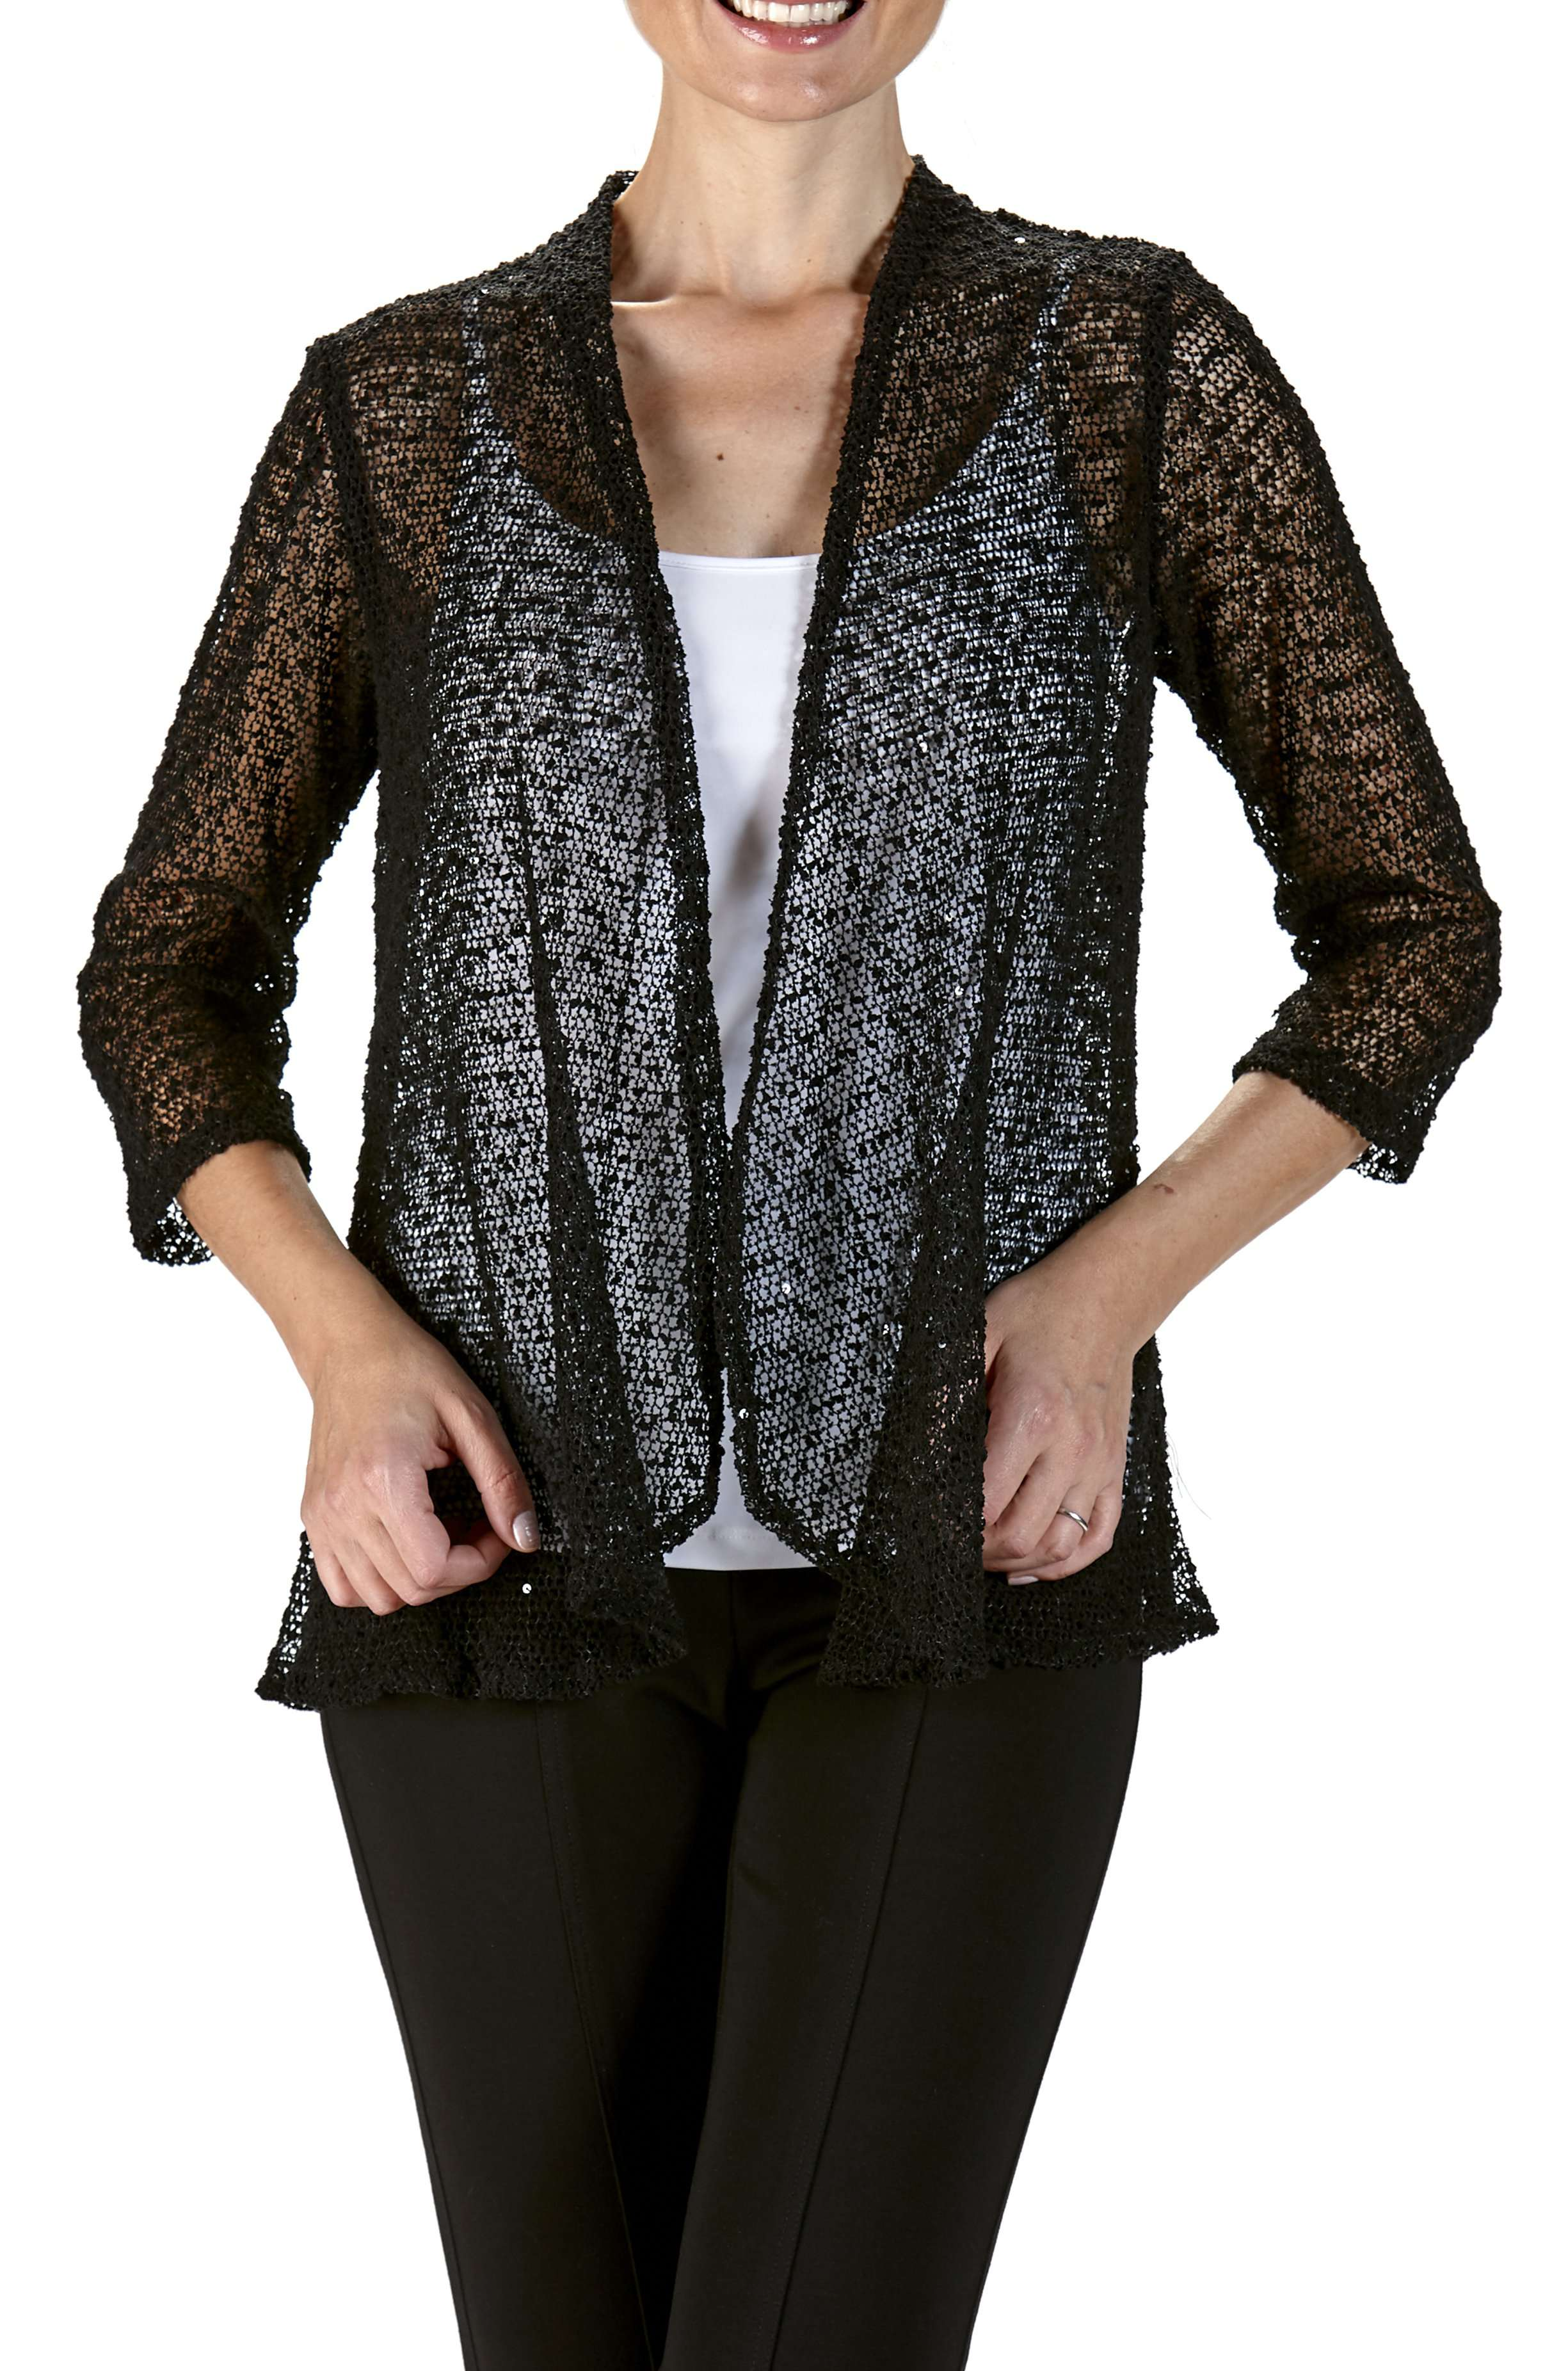 Women's Black Lace Jackets-Made In Canada-Shop Local - Yvonne Marie - Yvonne Marie